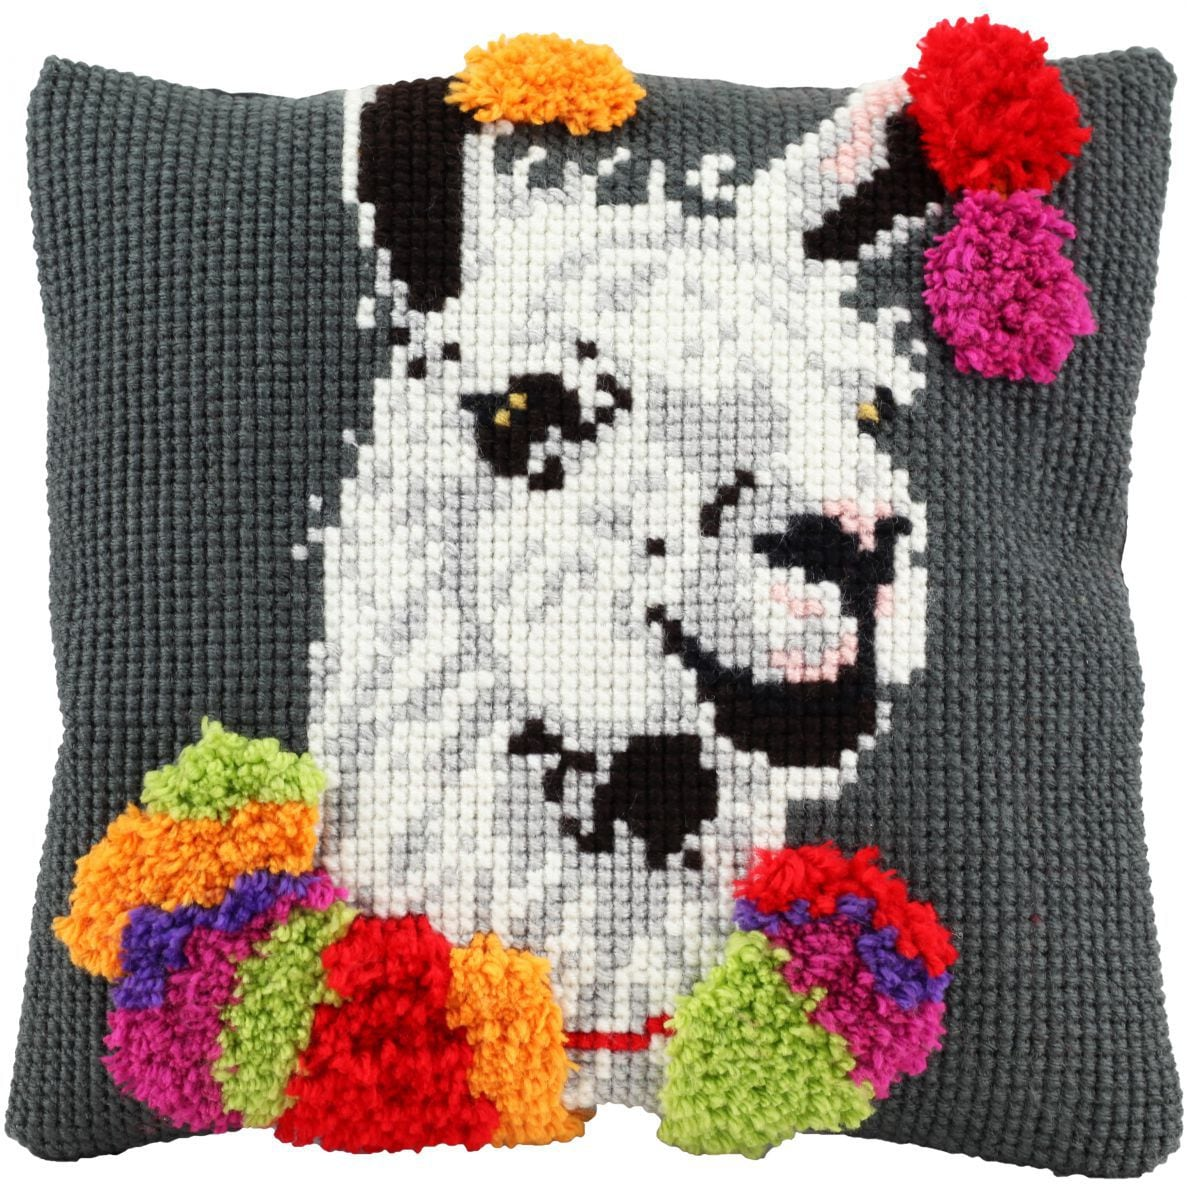 cross stitch latch hook cushion funny lama printed